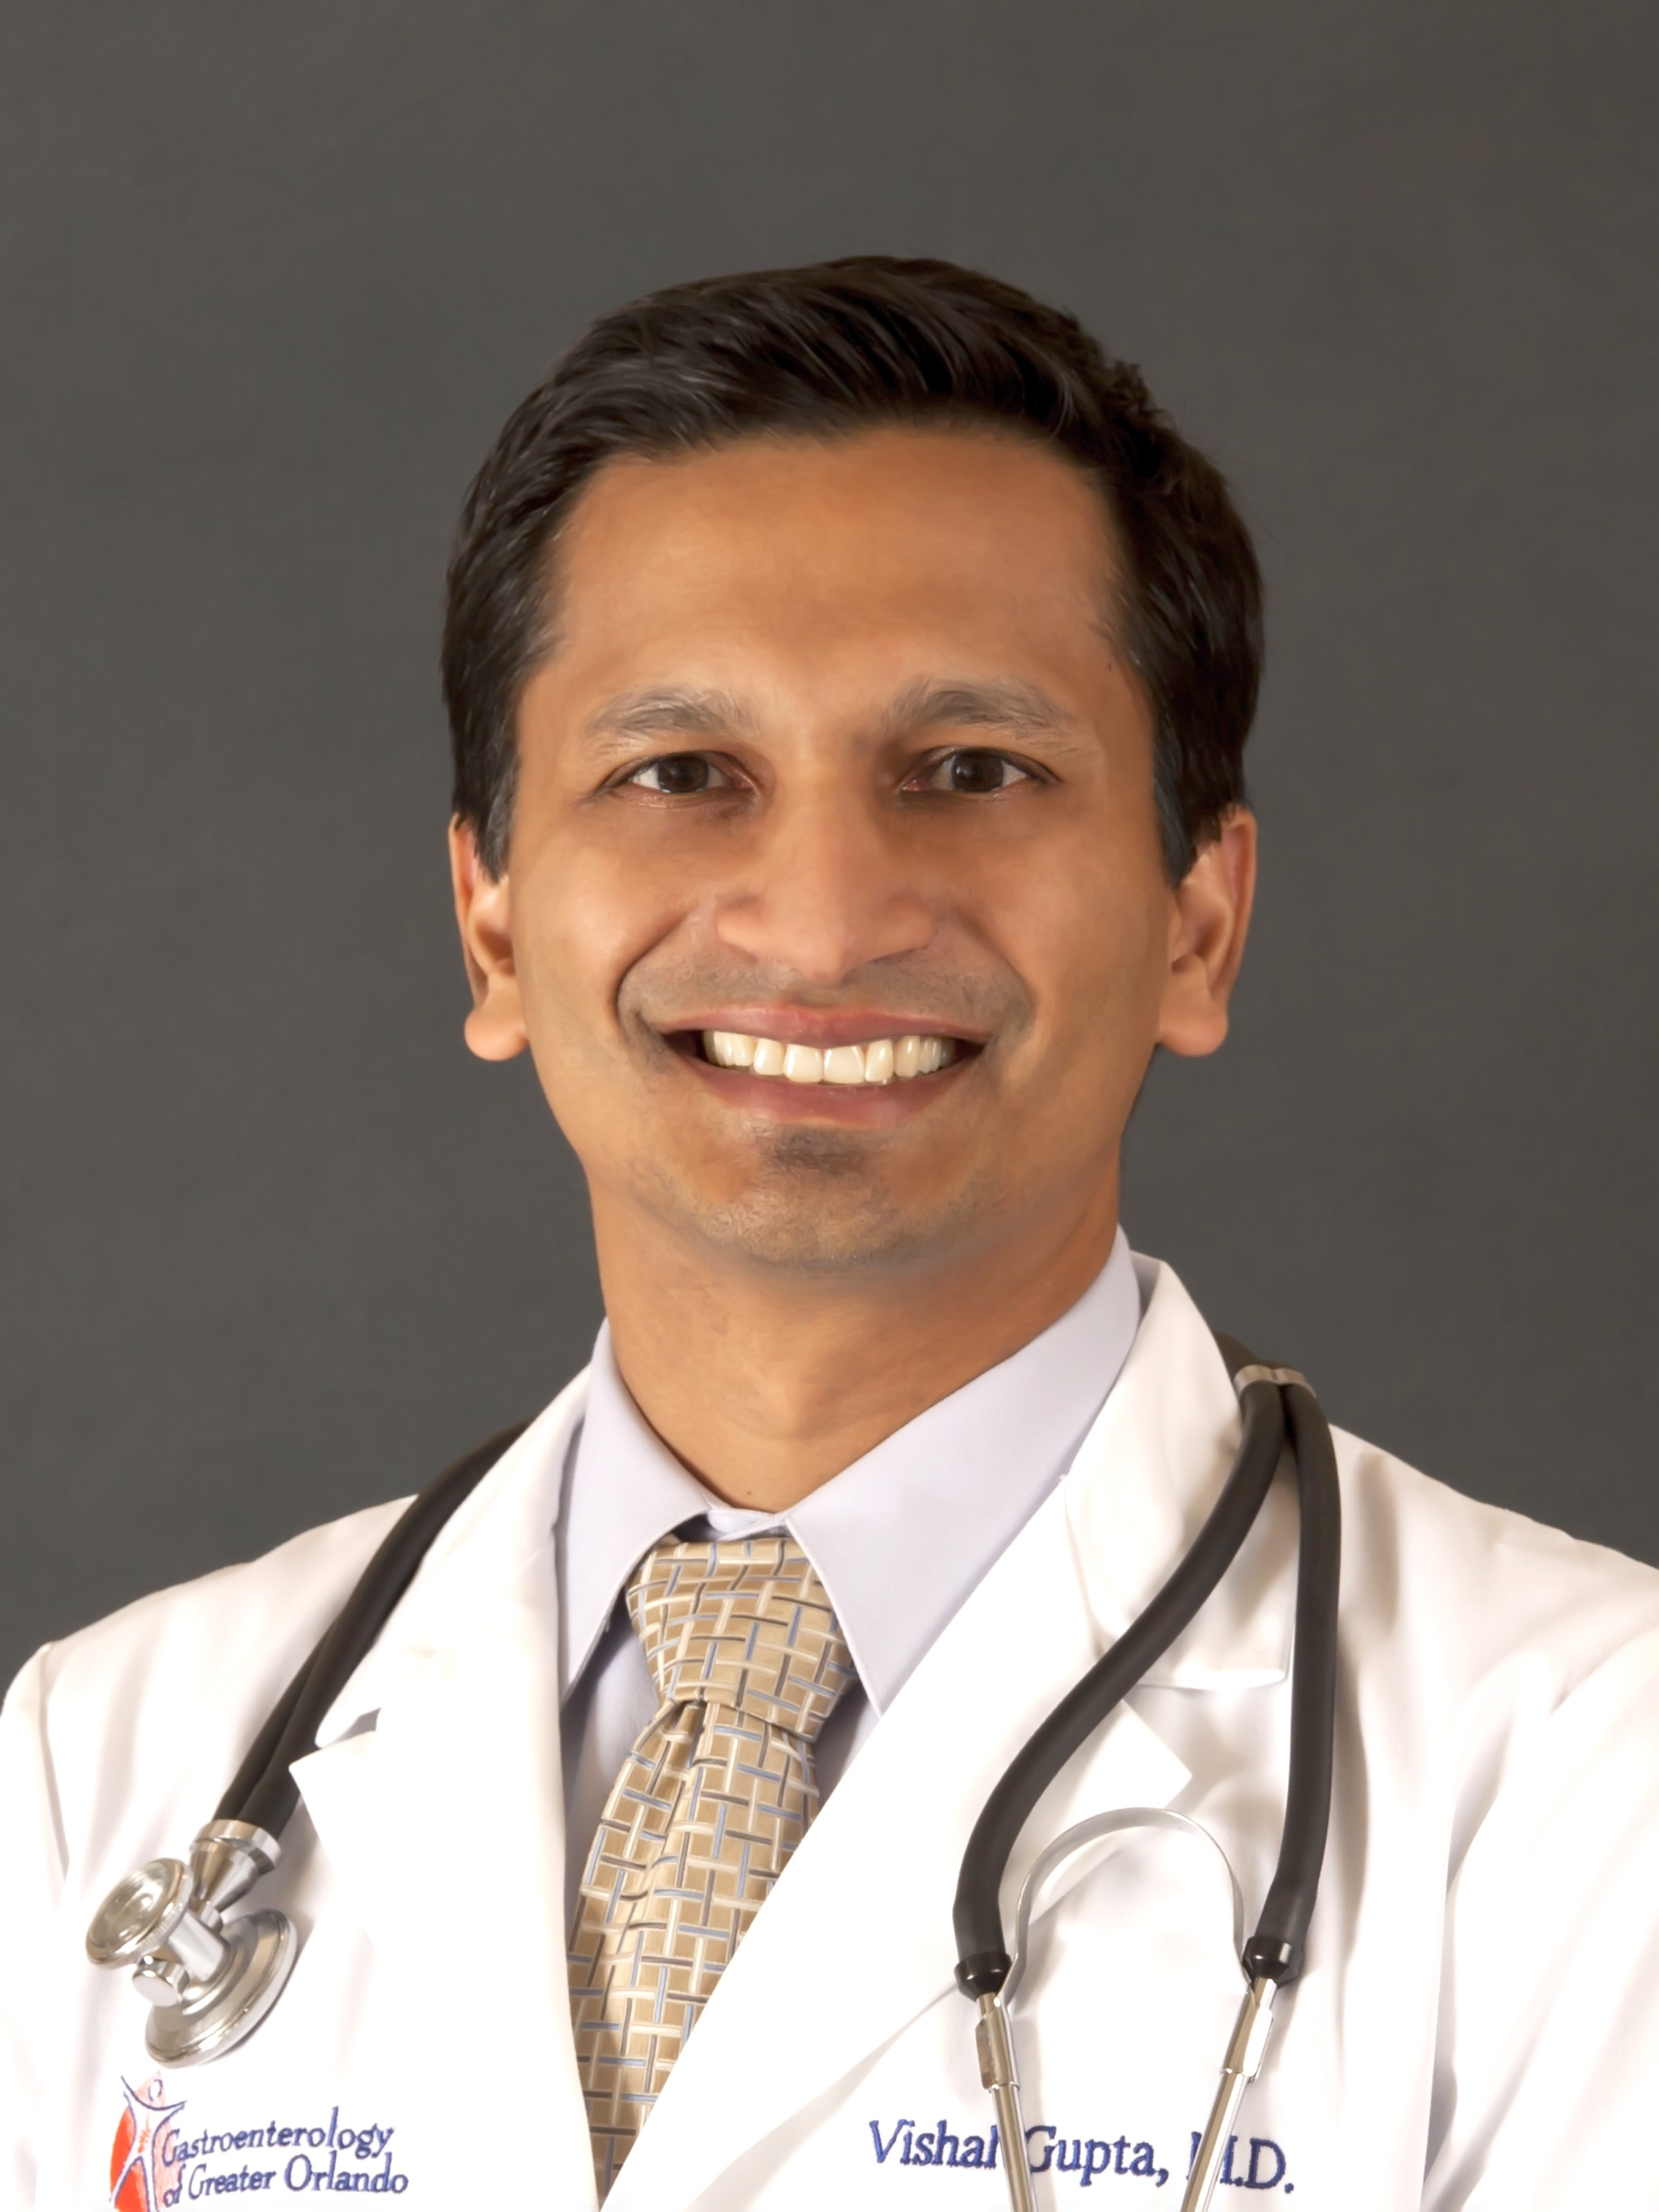 Vishal Gupta, MD, PHD